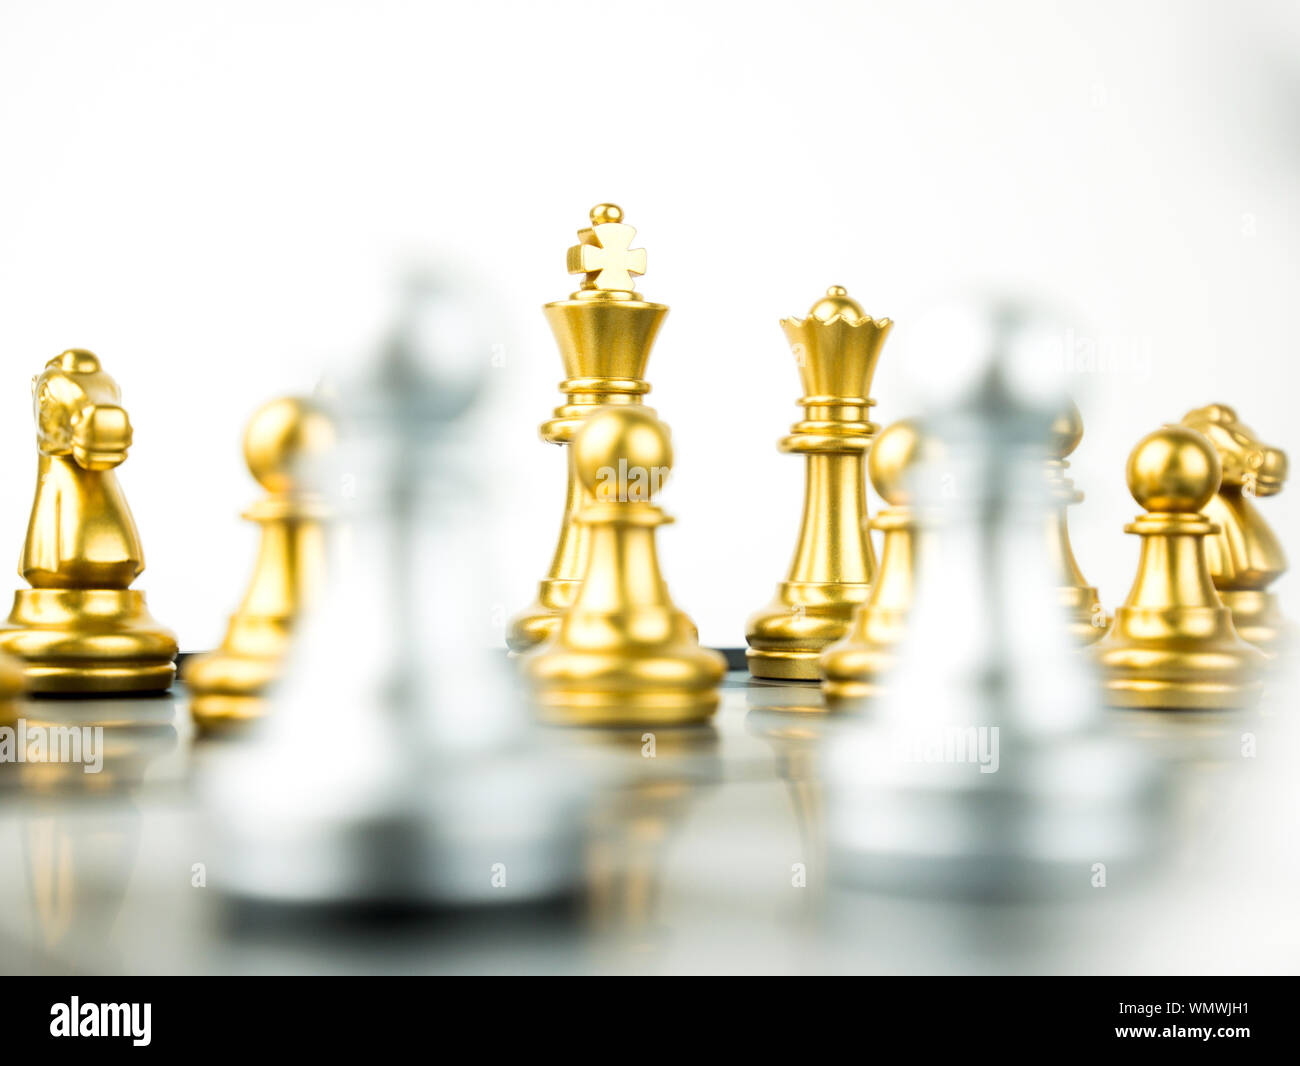 Gold and Silver King and Knight of chess setup on white